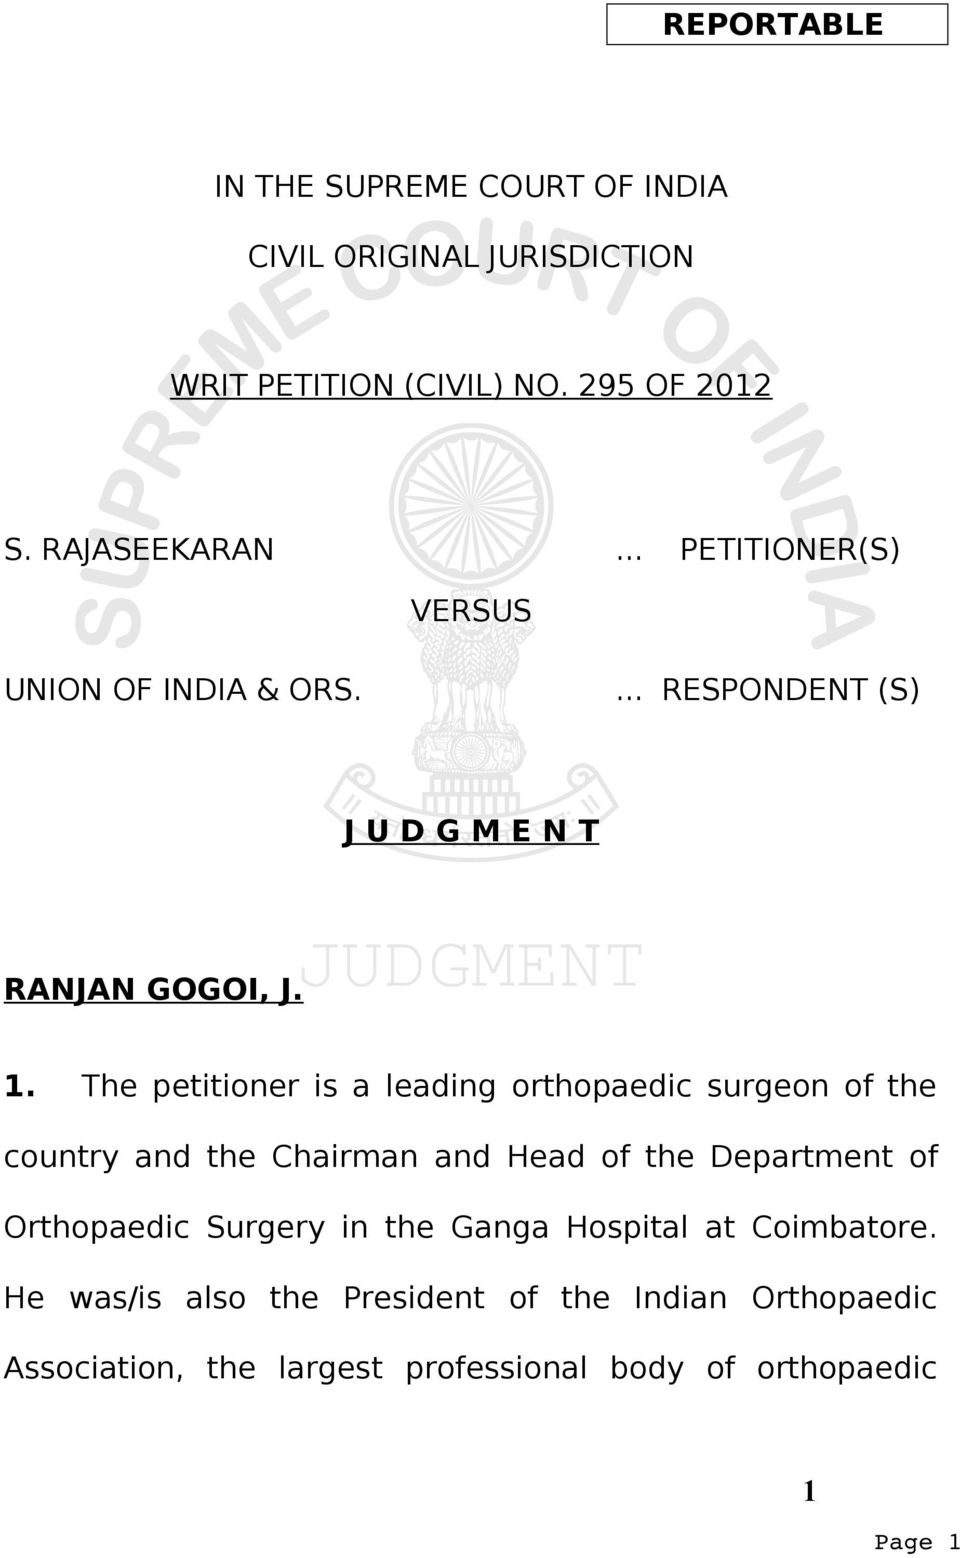 The petitioner is a leading orthopaedic surgeon of the country and the Chairman and Head of the Department of Orthopaedic